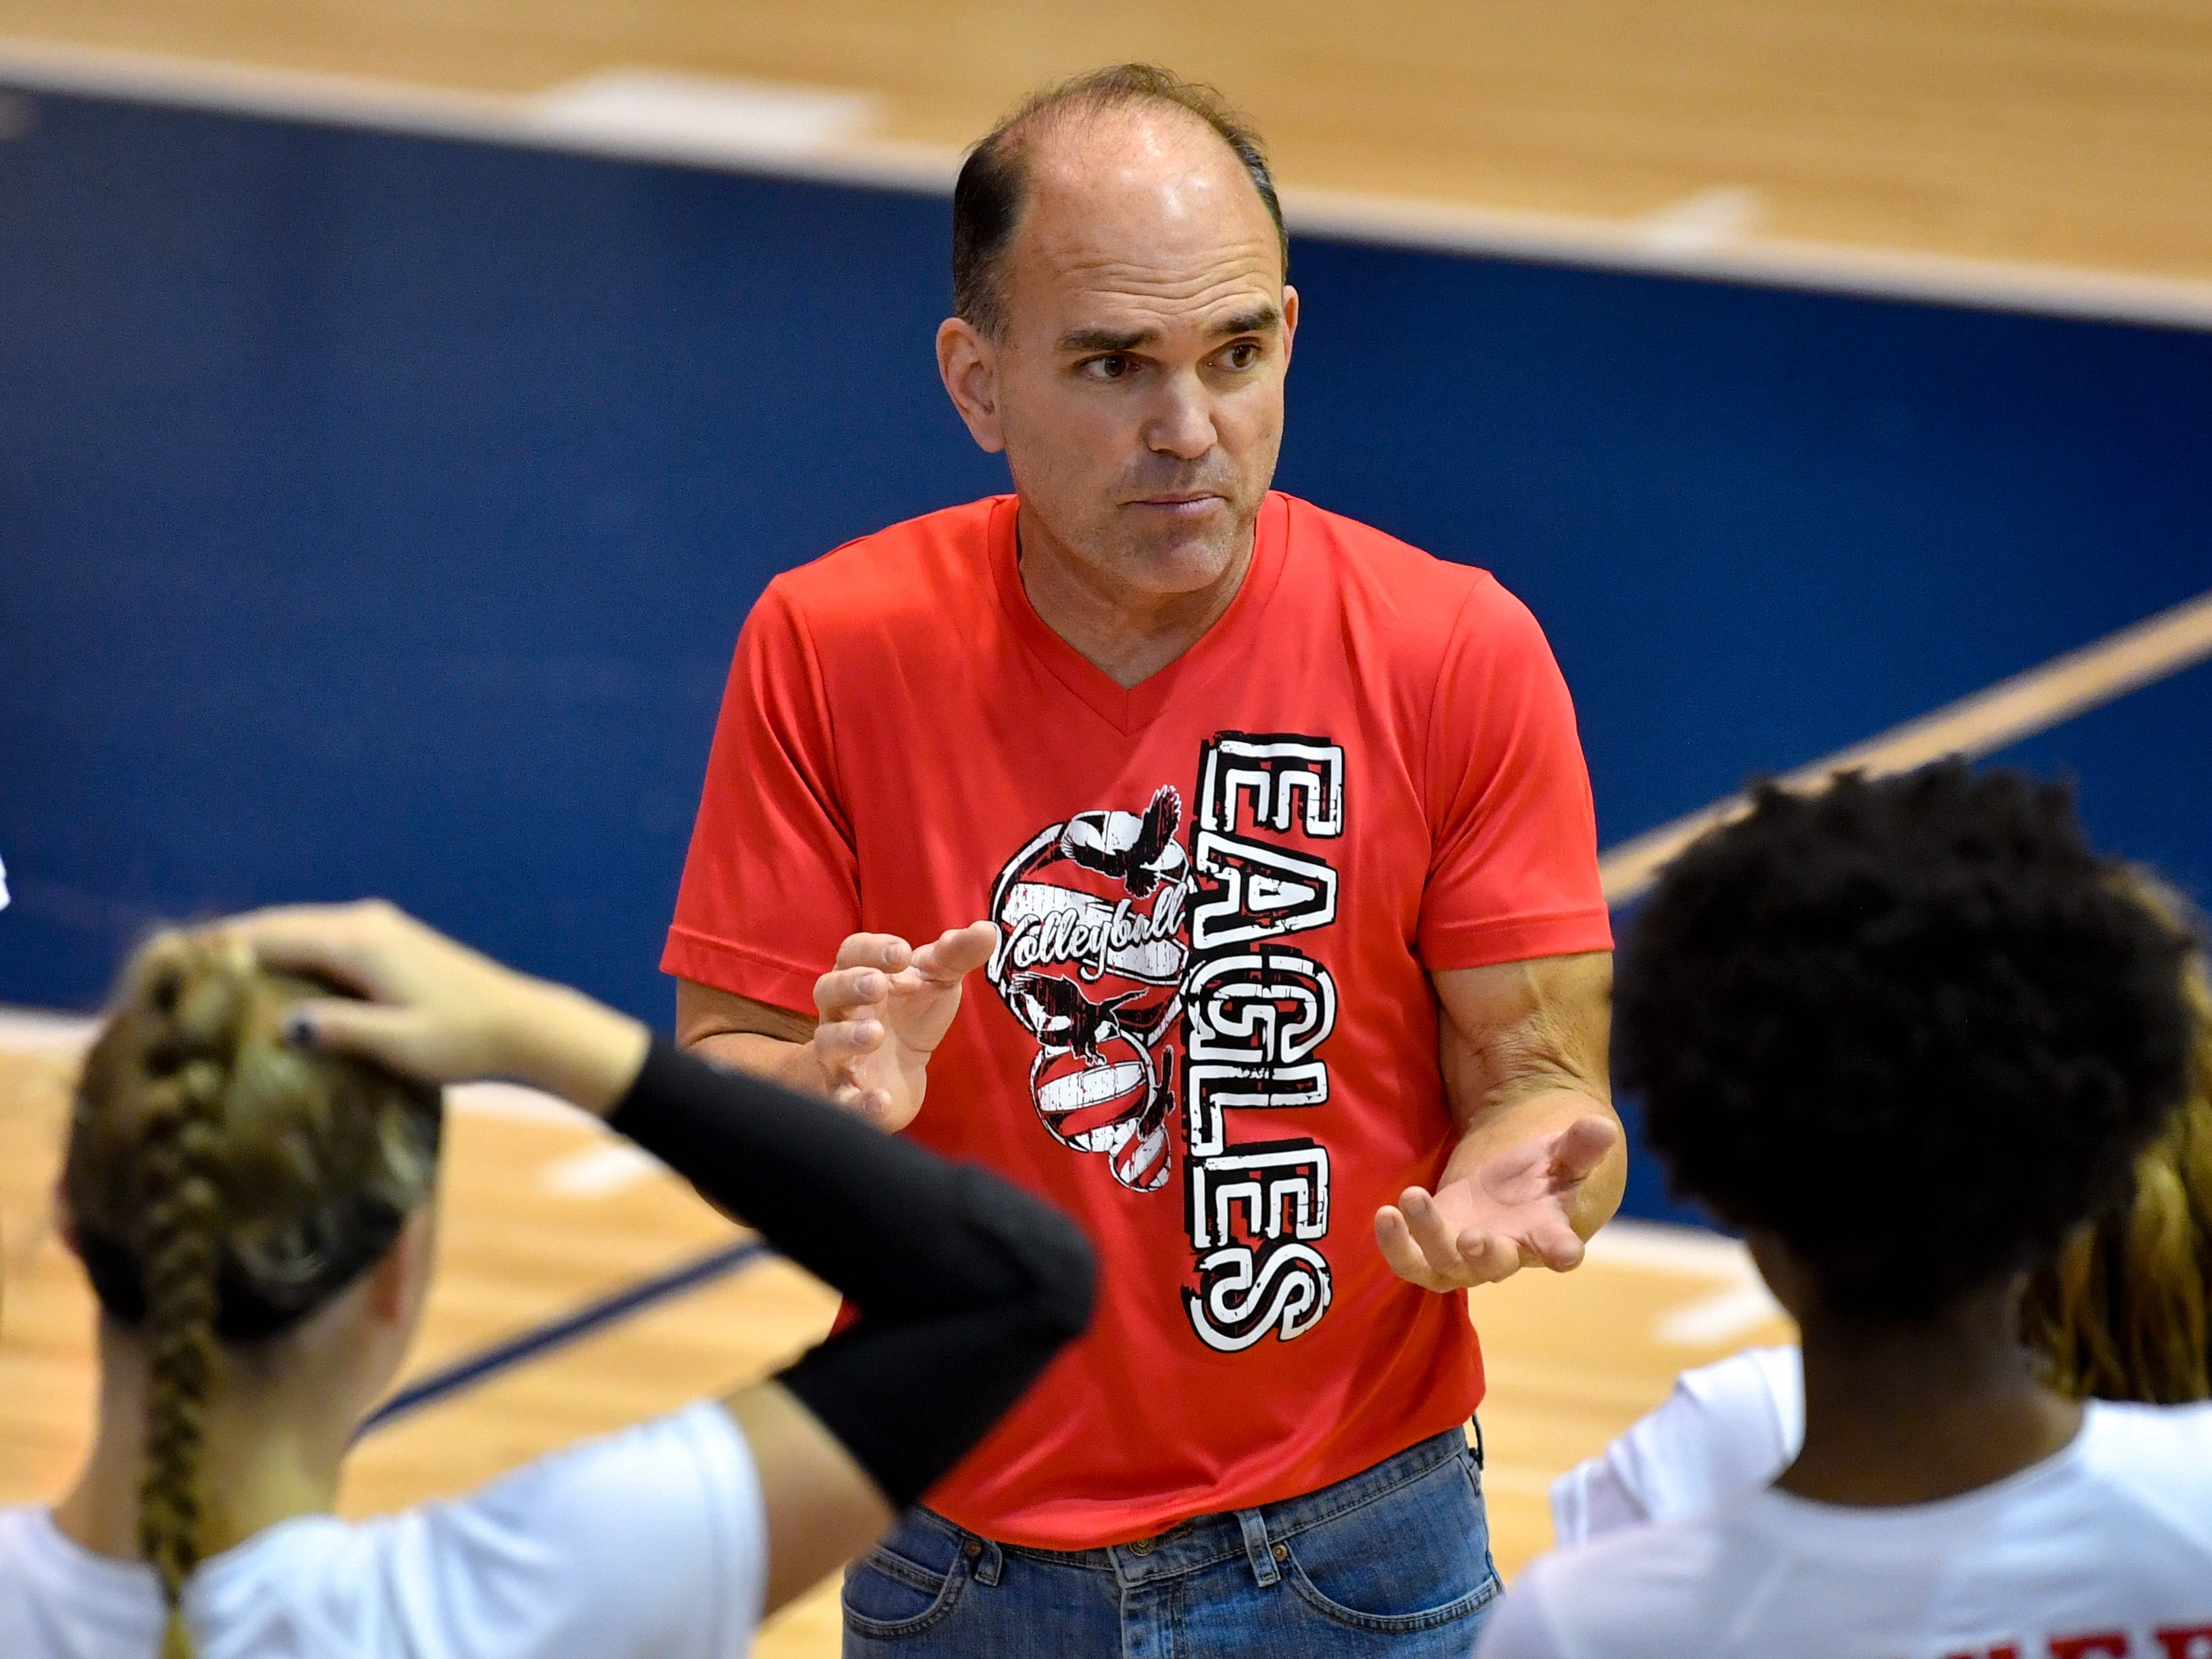 Dover head coach Brett Hoffman motivates his team during the YAIAA league volleyball tournament semifinals between West York and Dover, Tuesday, October 23, 2018. The Bulldogs defeated the Eagles 3-1.